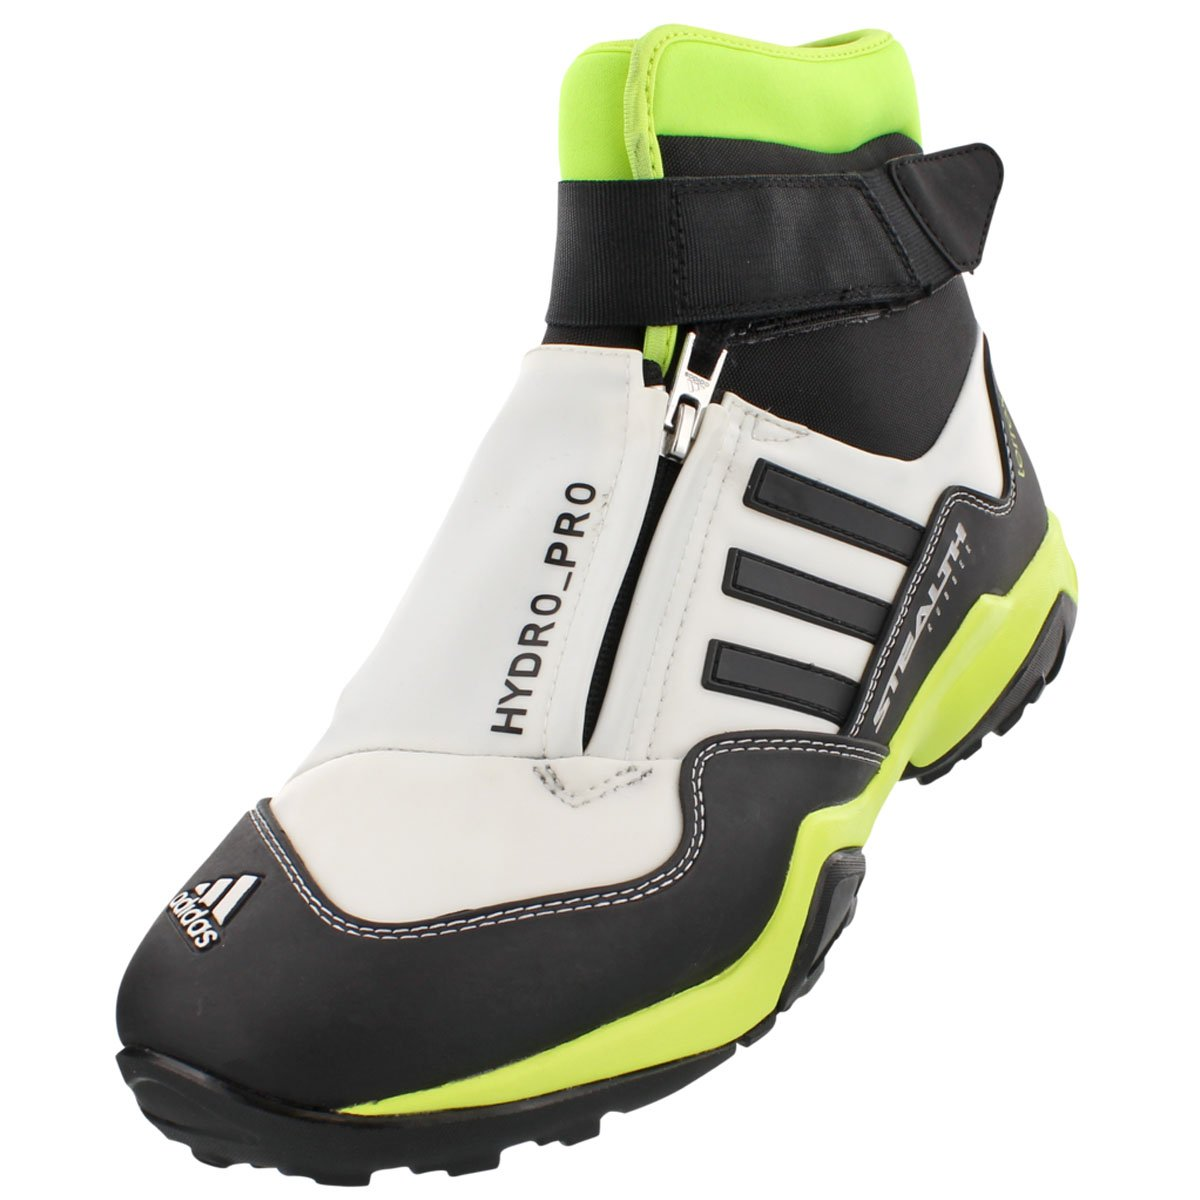 Frase Lo encontré para justificar  adidas hydro pro, OFF 76%,Best Deals Online.,